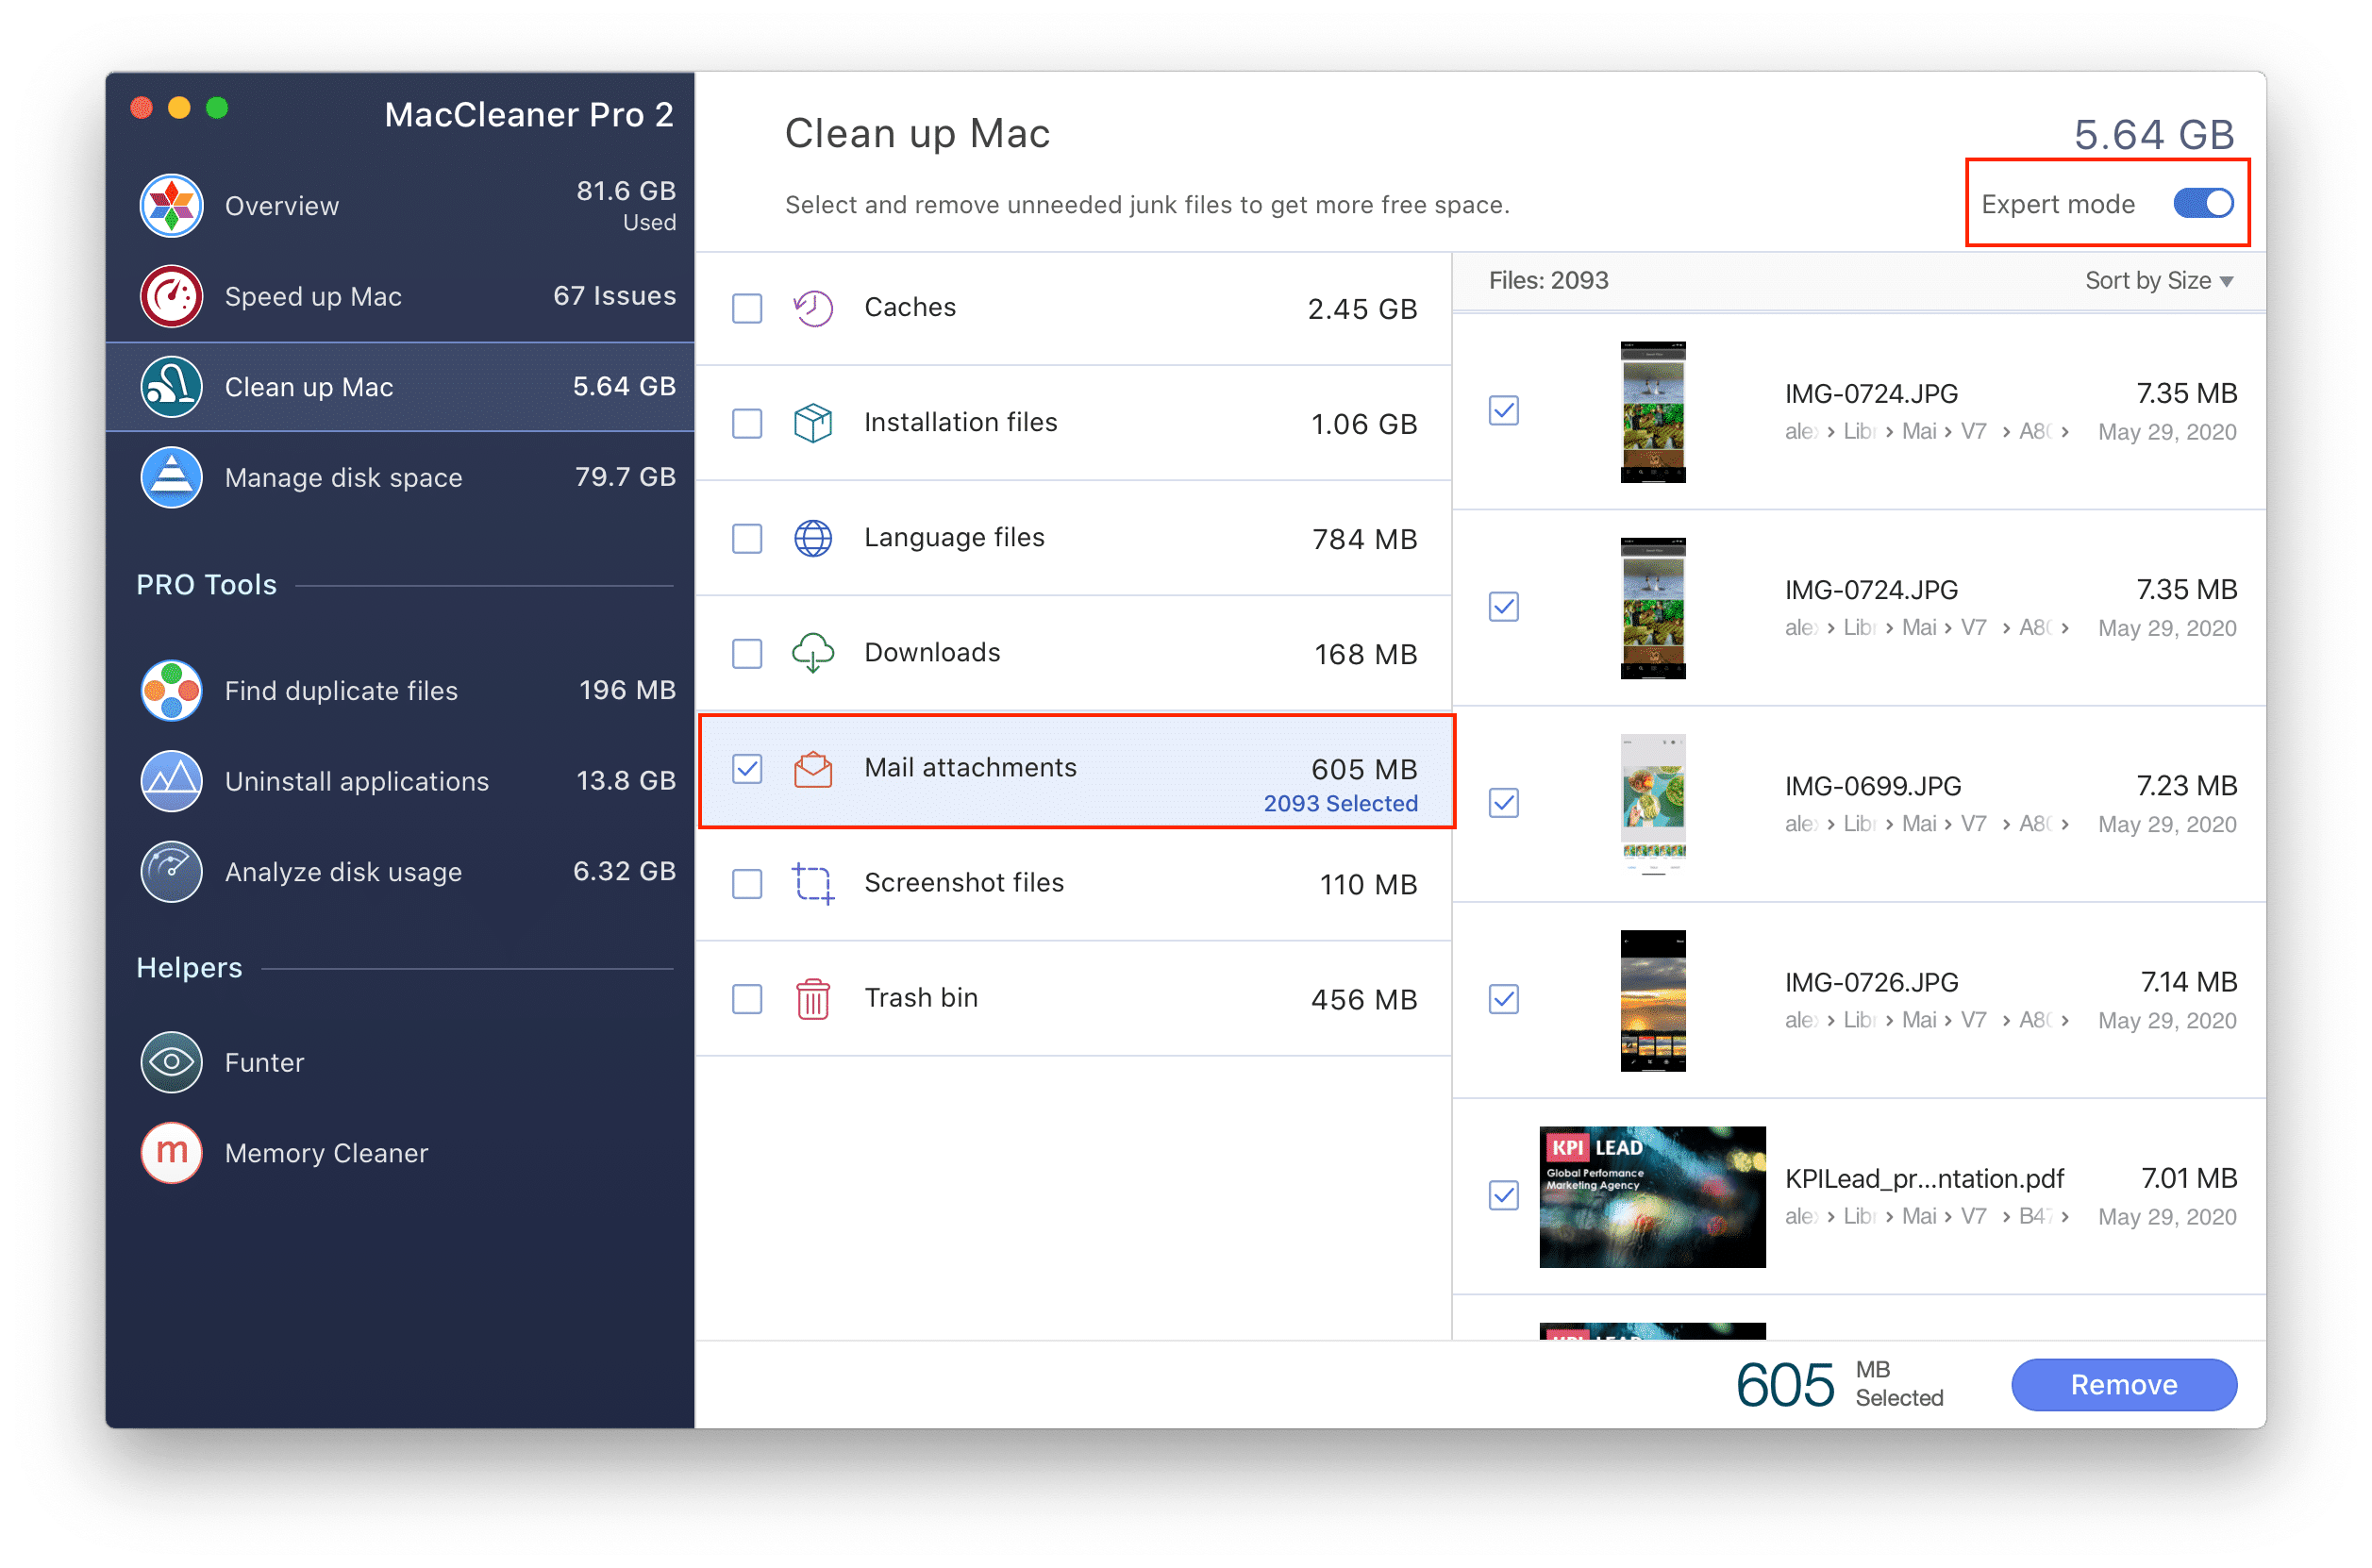 MacCleaner Pro window with Expert mode enabled and Mail attachments tab ticked